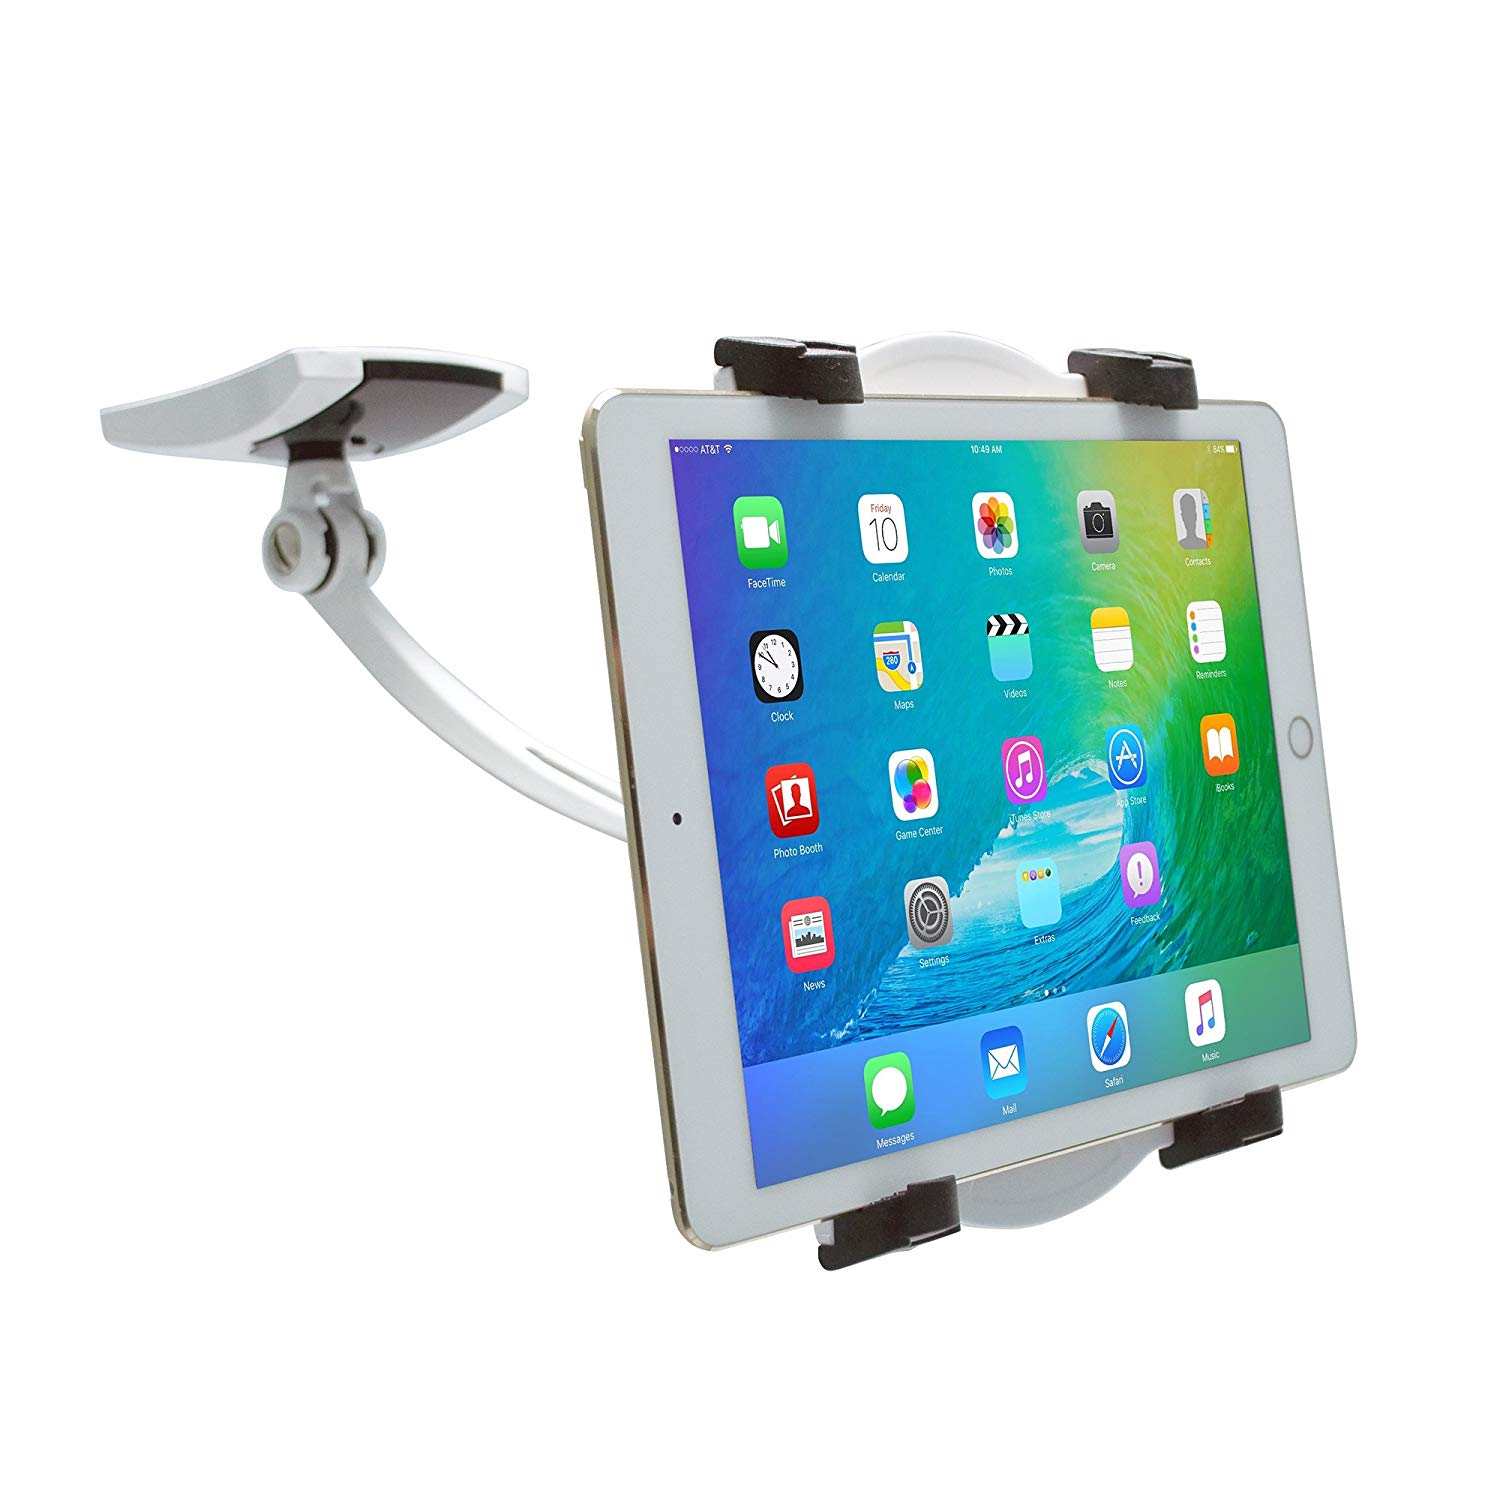 "CTA Digital Wall/Under-Cabinet & Desk Mount with 2 Mounting Bases for 7-13"" Tablets, Including 12.9-inch iPad Pro (2018) and 11-inch iPad Pro (2018)"